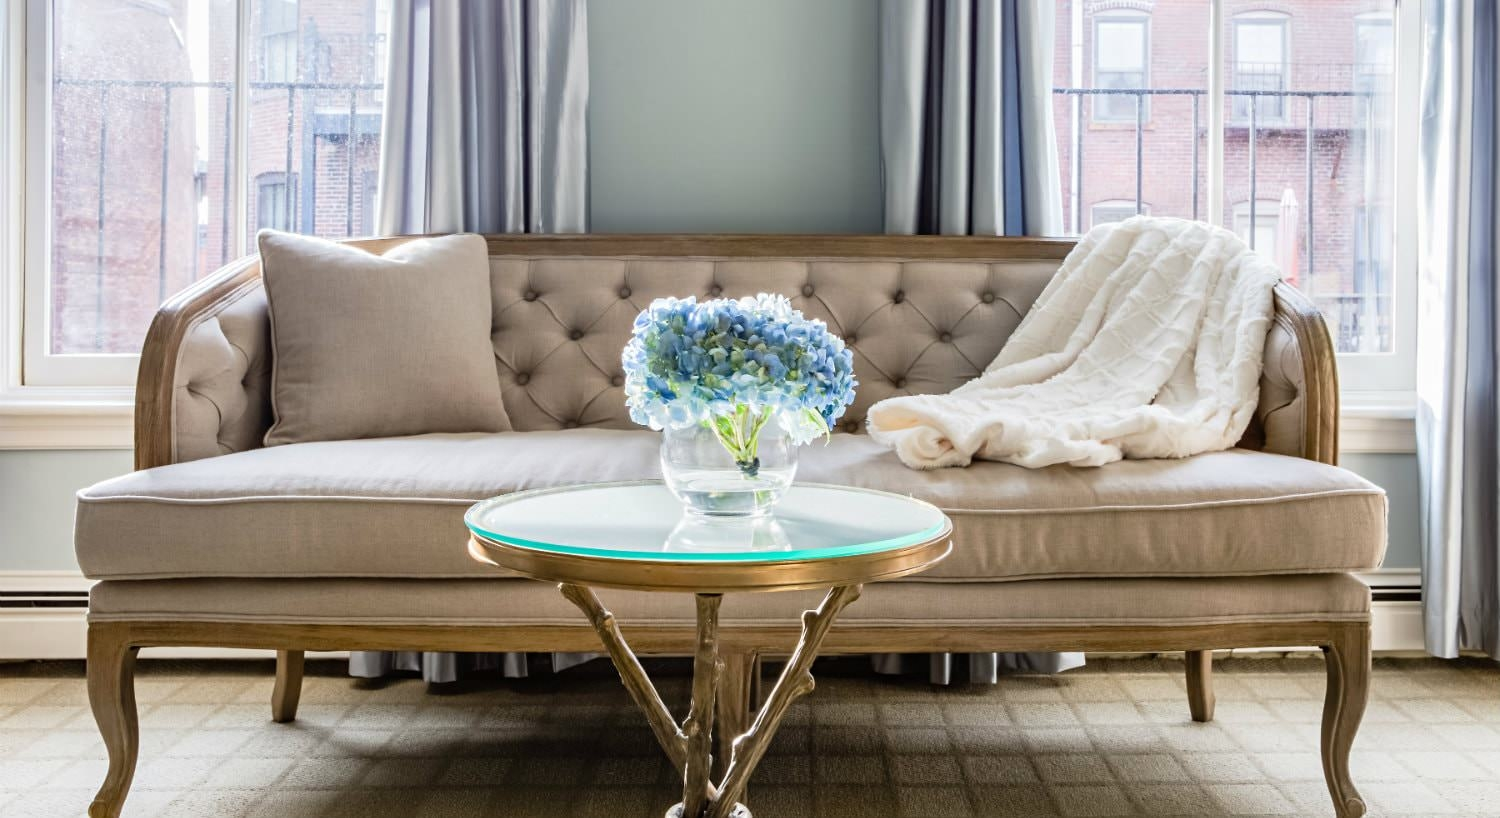 Beige settee in front of two windows with silver curtains and a small round coffee table with blue flowers